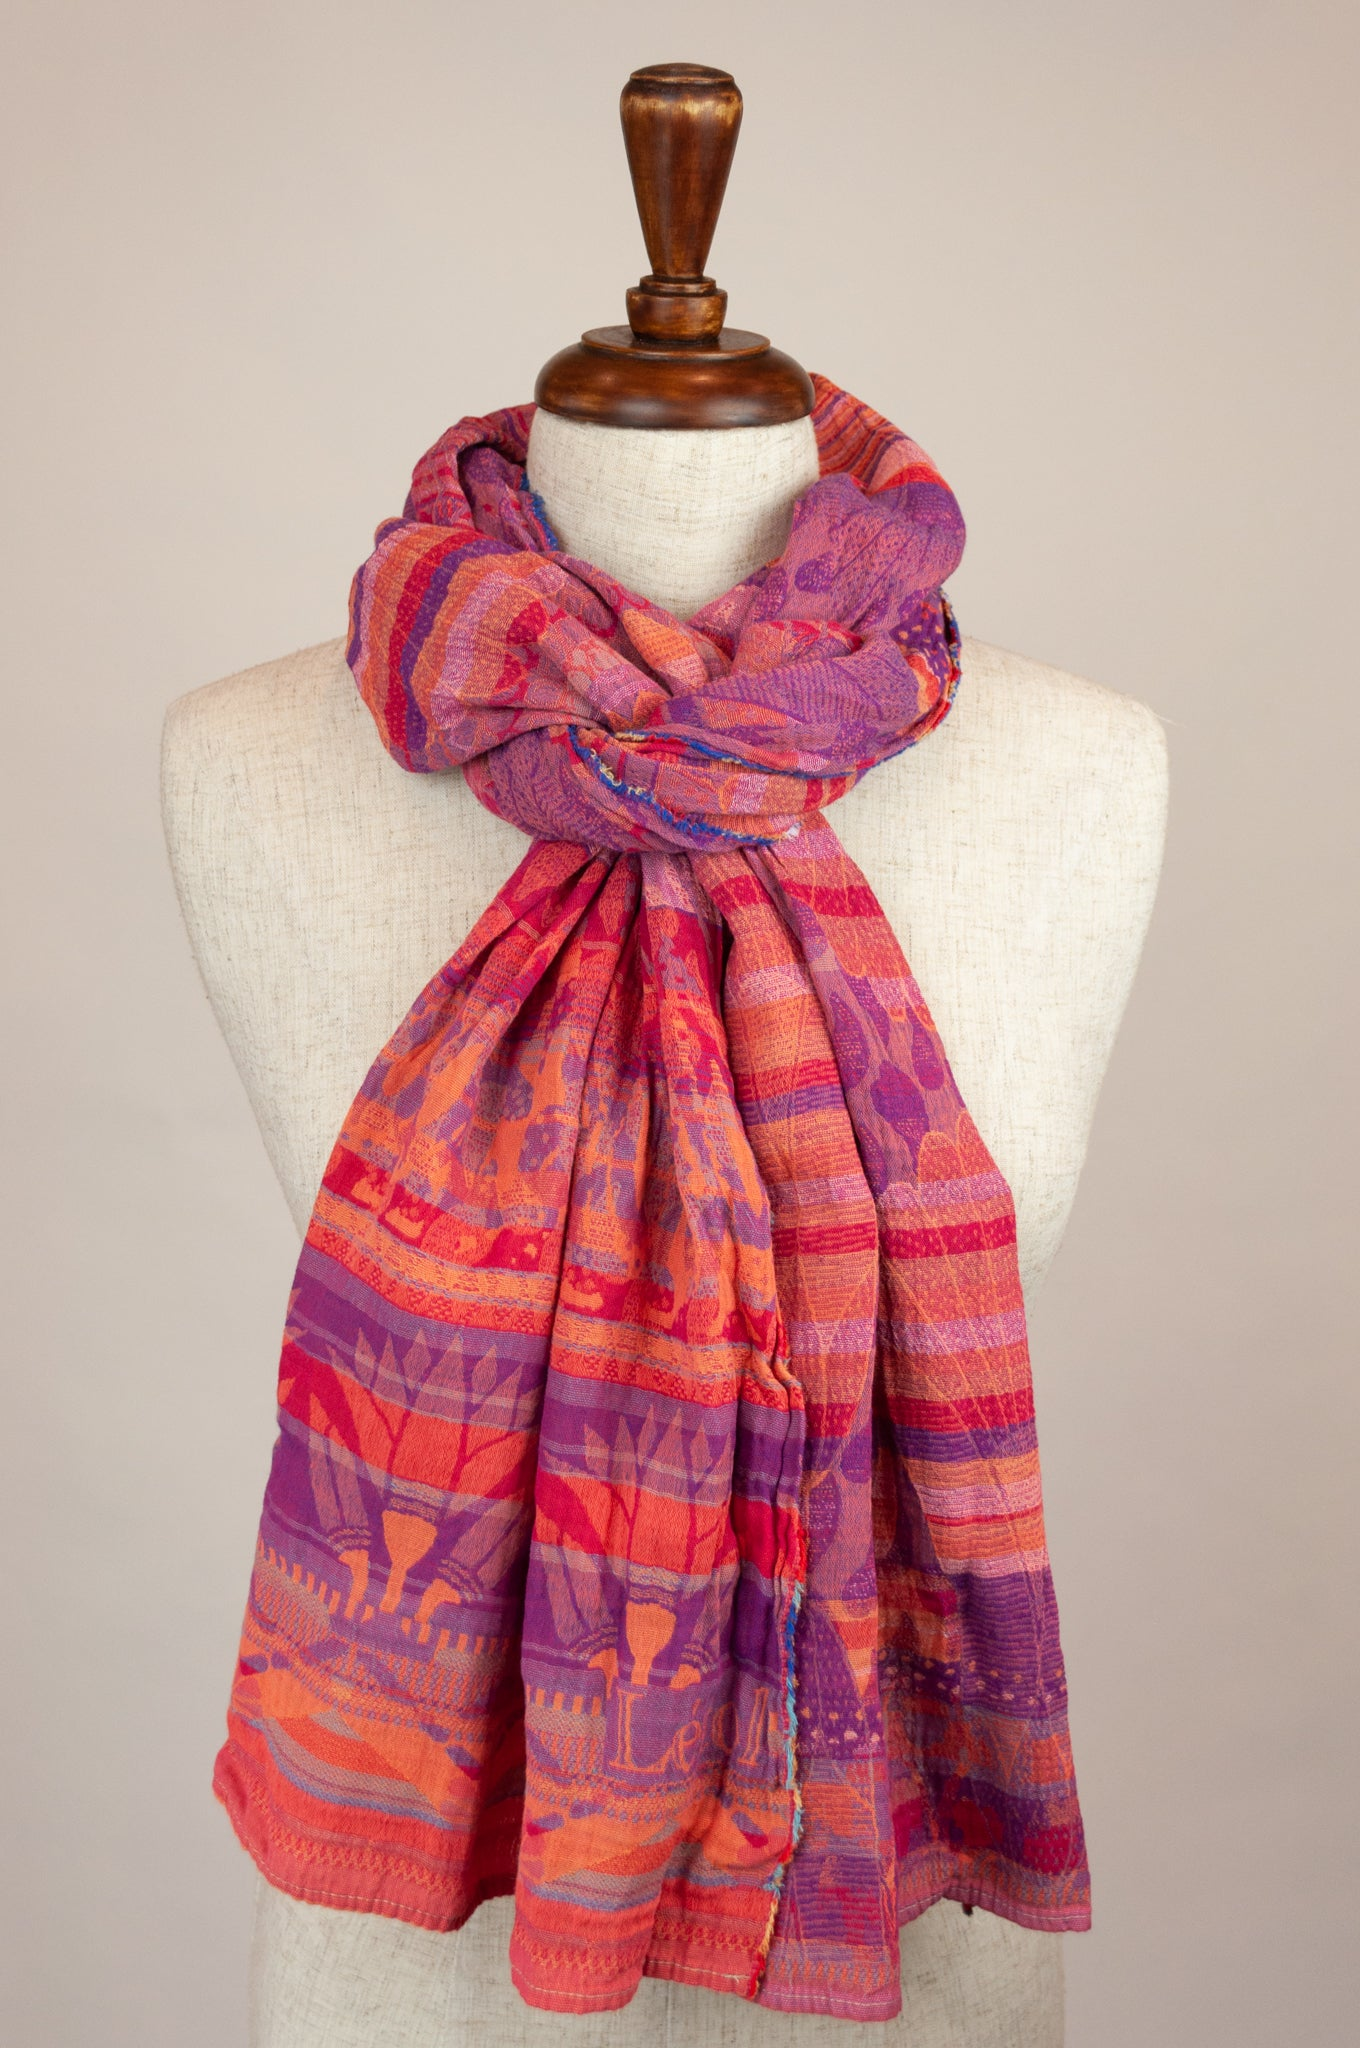 Létol French organic cotton scarf with a striped and floral design in tones of bright pink, cerise, purple and orange.